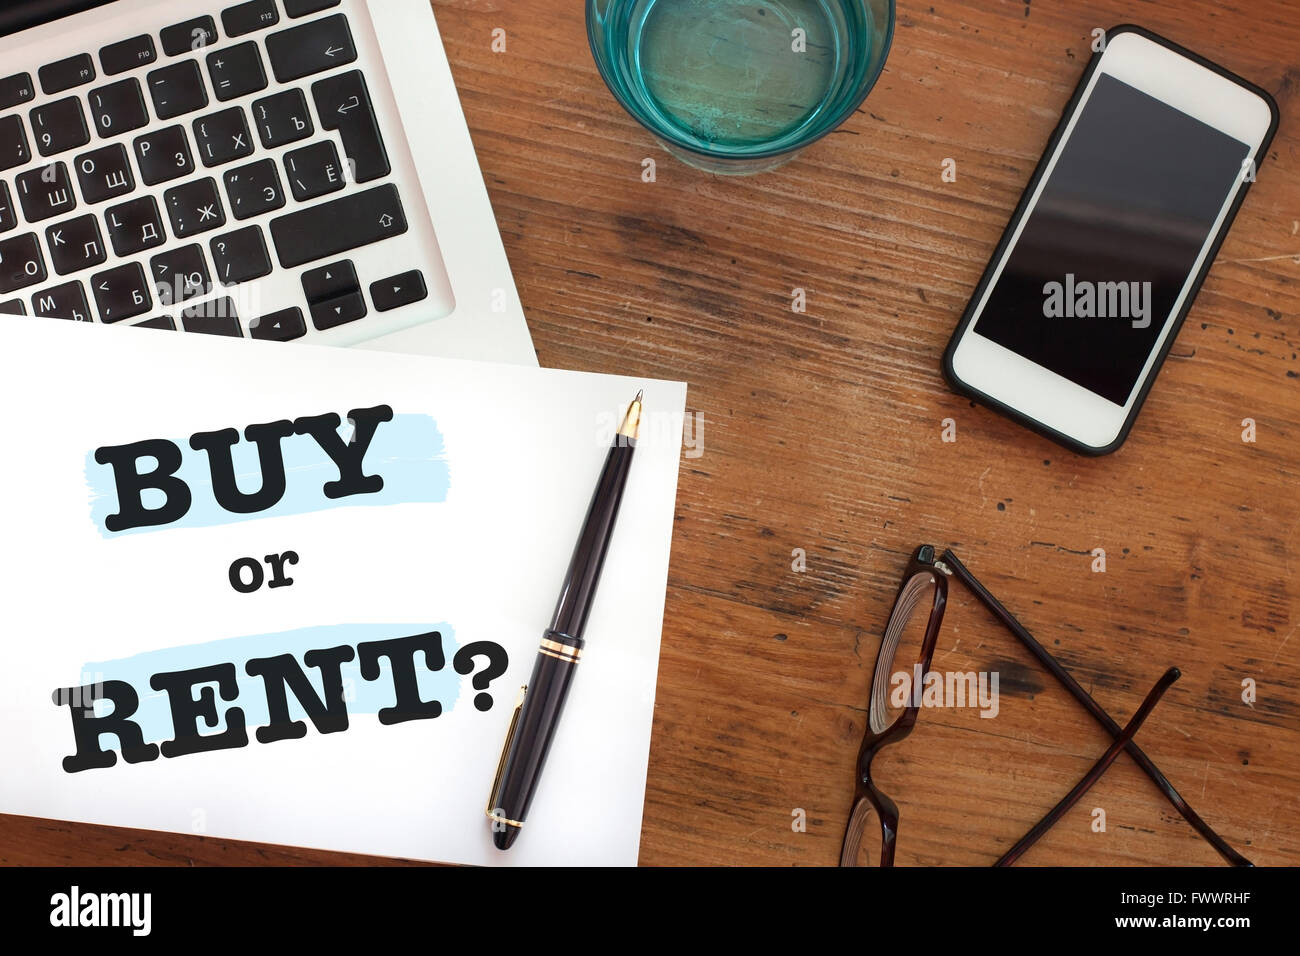 buy or rent choice concept, question, real estate business - Stock Image